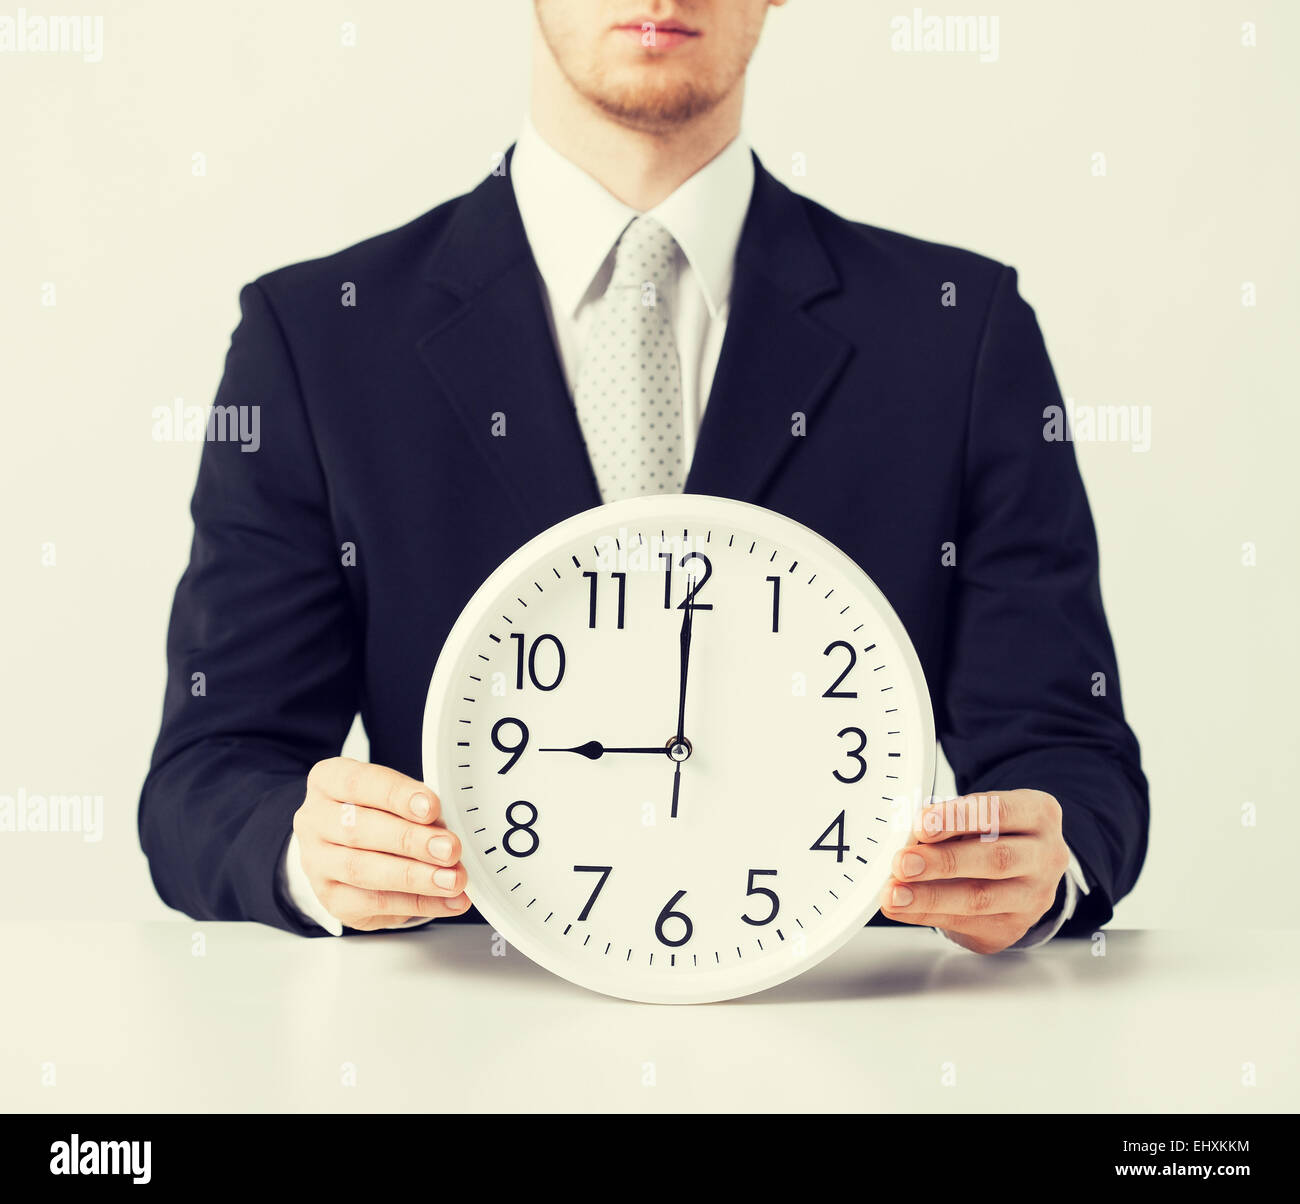 man with wall clock - Stock Image